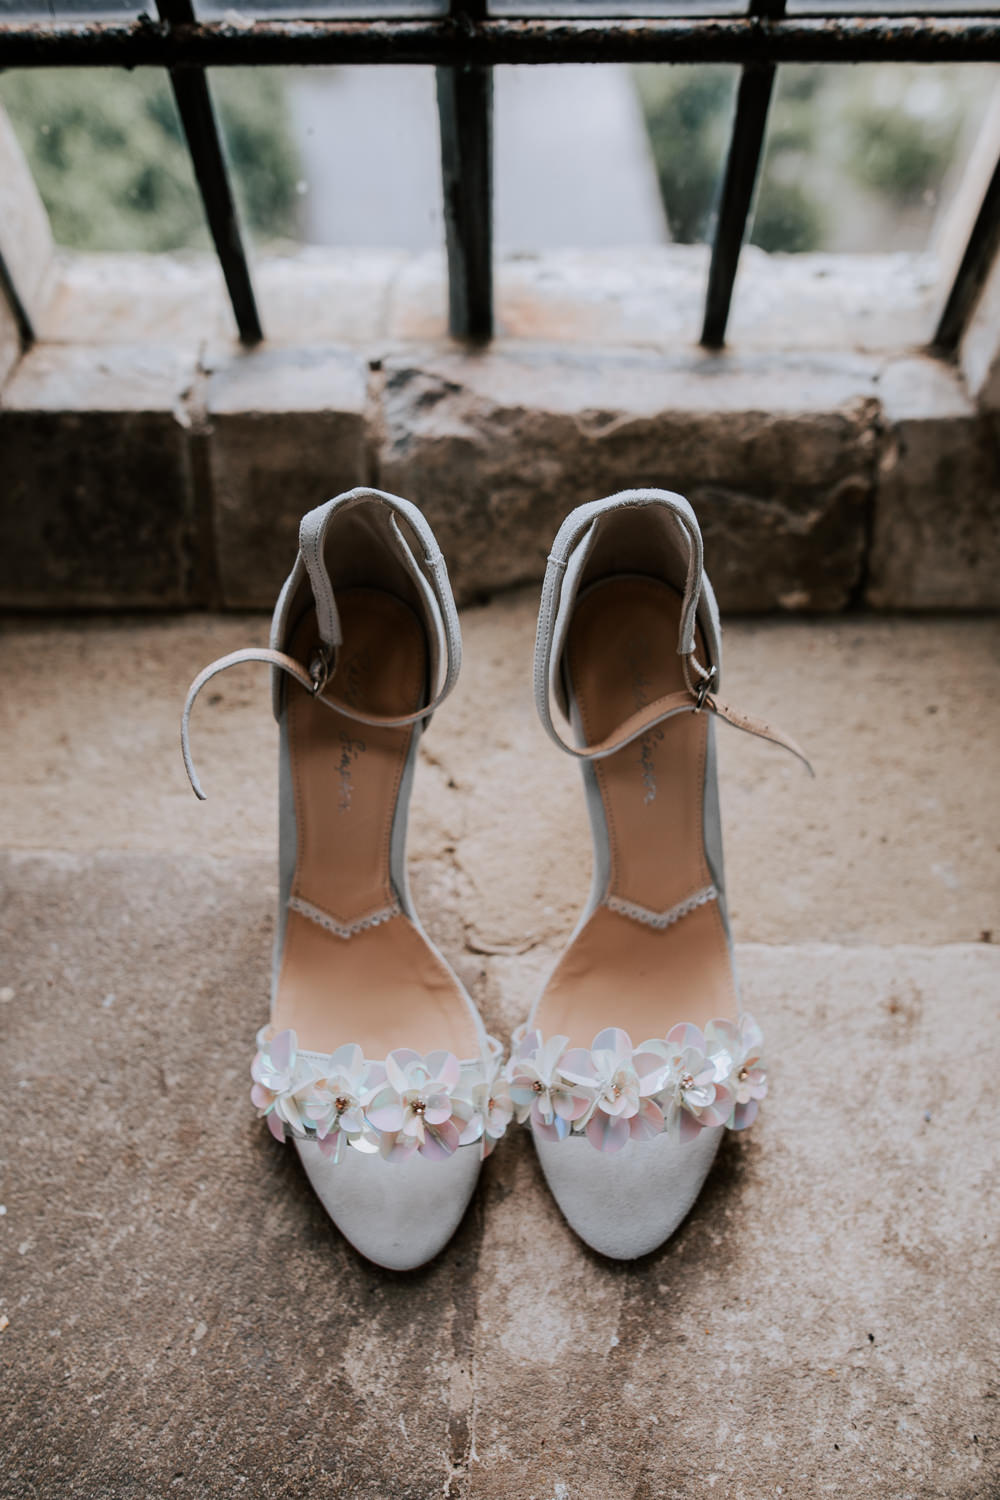 Shoes Bride Bridal Floral Flower Butley Priory Wedding Sally Rawlins Photography